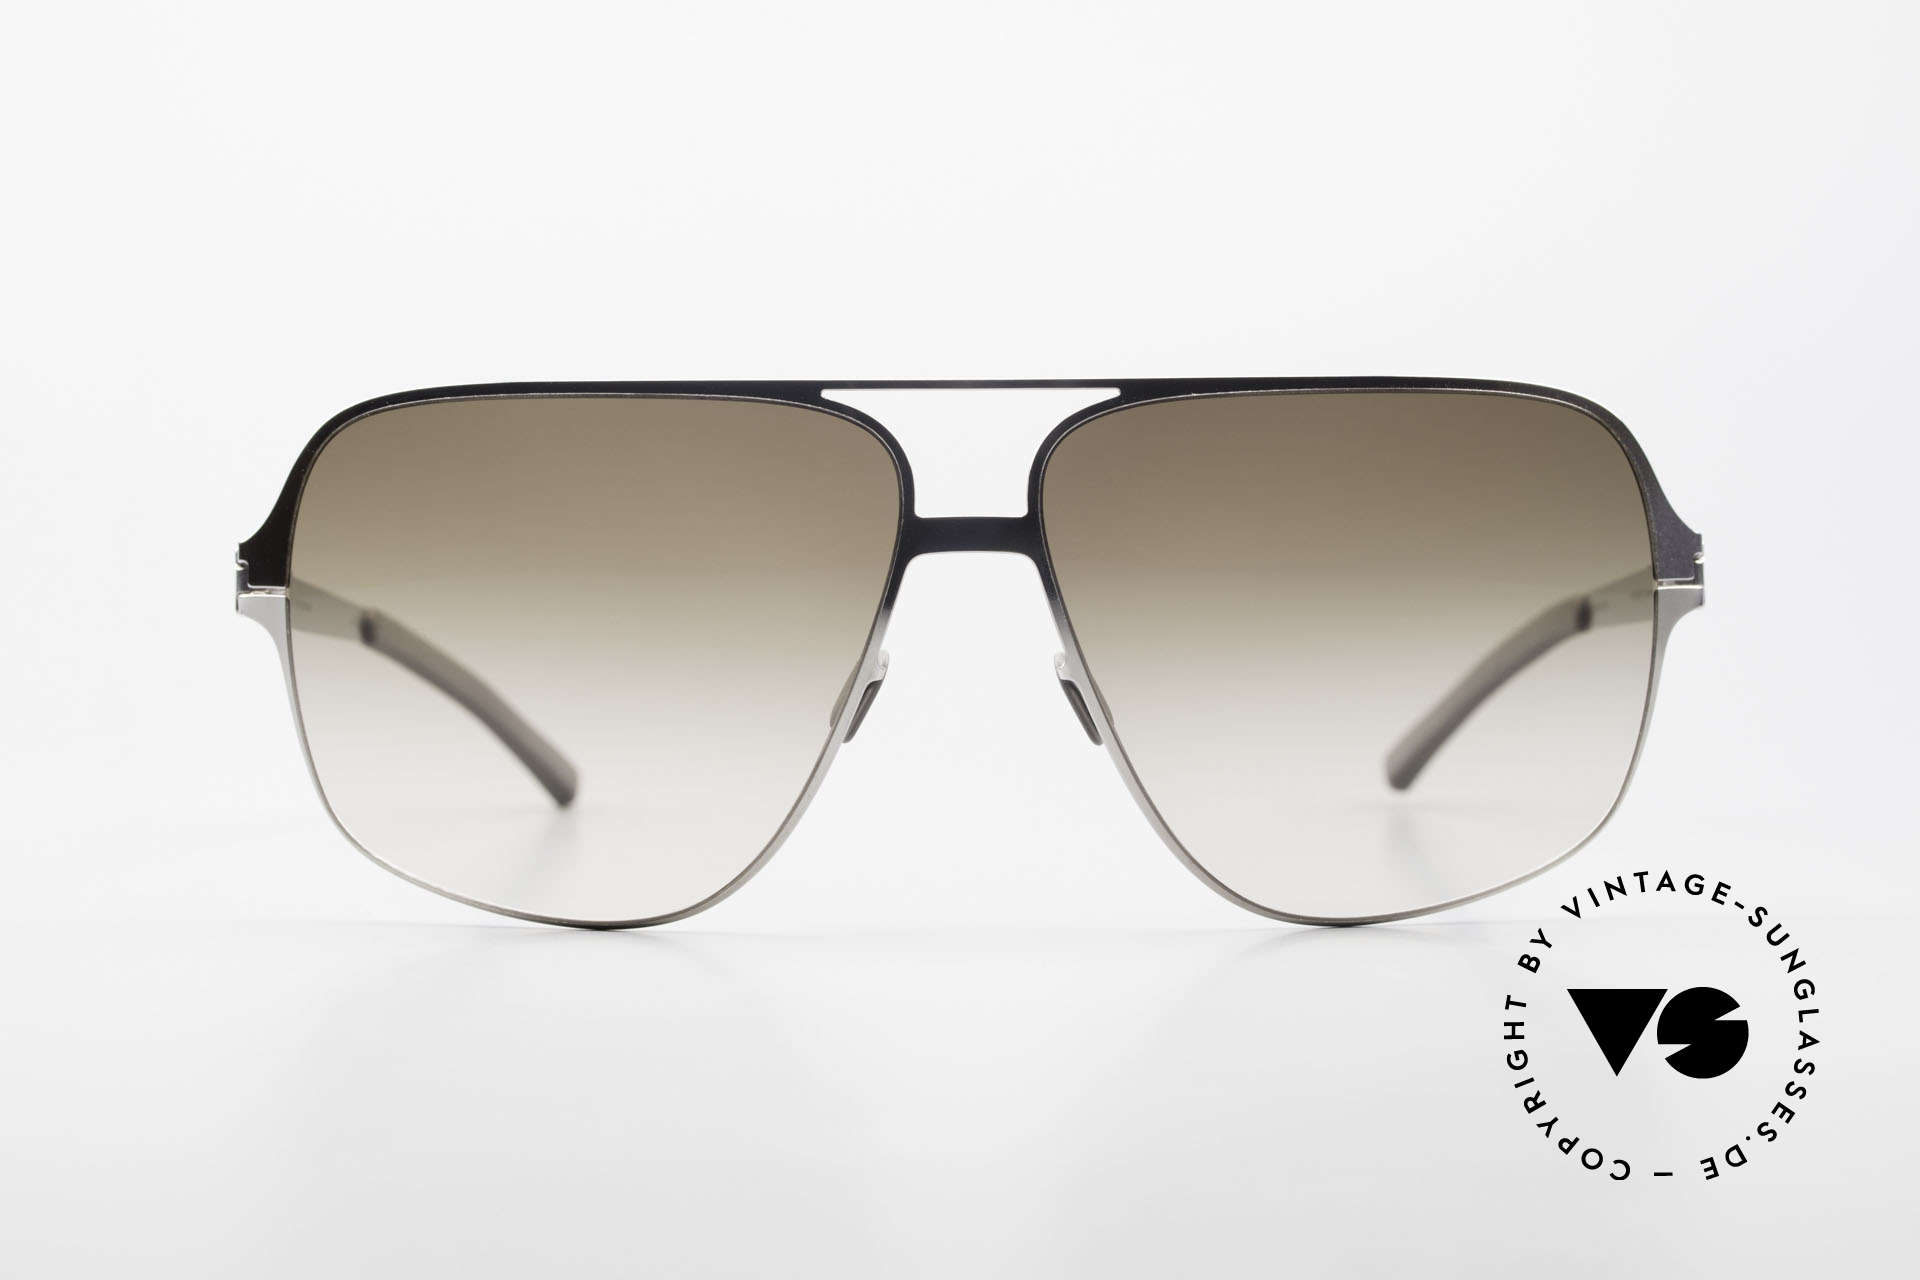 Mykita Cassius Lenny Kravitz Sunglasses XXL, MYKITA: the youngest brand in our vintage collection, Made for Men